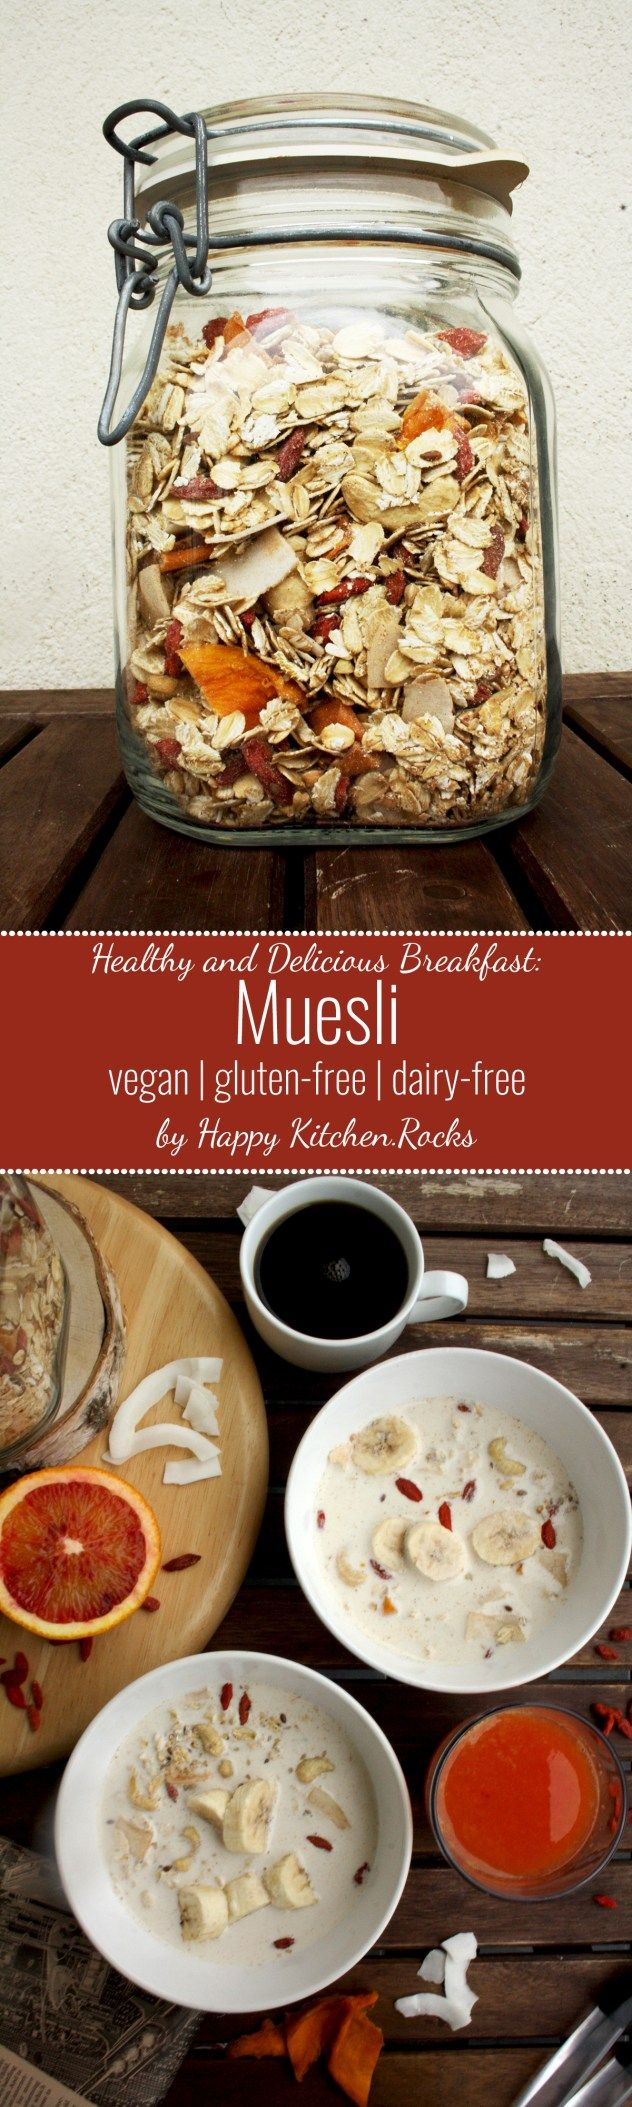 Muesli Recipe: Delicious, wholesome, nutritious and quick breakfast based on grains, nuts, seeds and fruits. Spend 10 minutes to make a big jar and use it whenever you need! The recipe is adjustable t